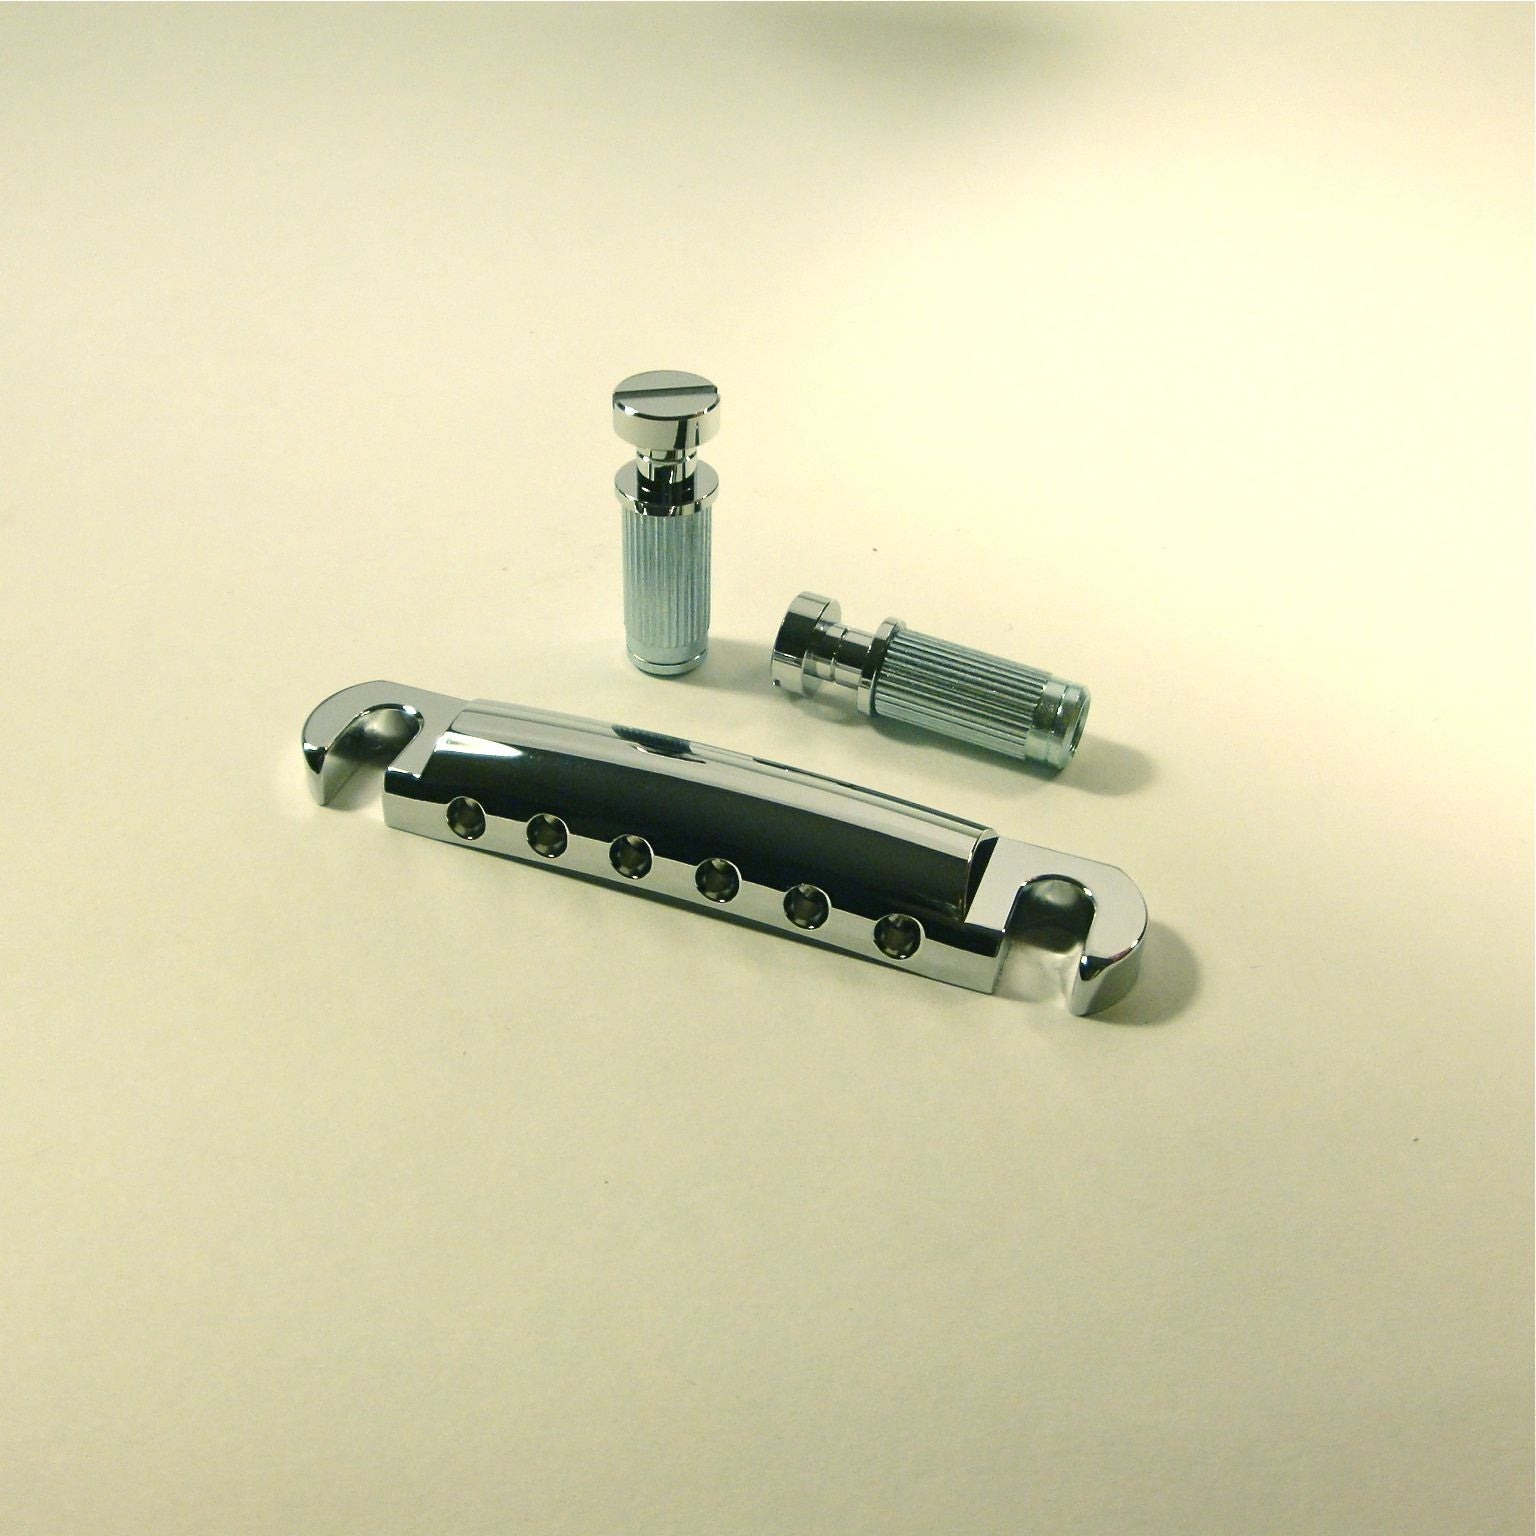 Gotoh Stop Bar tailpiece